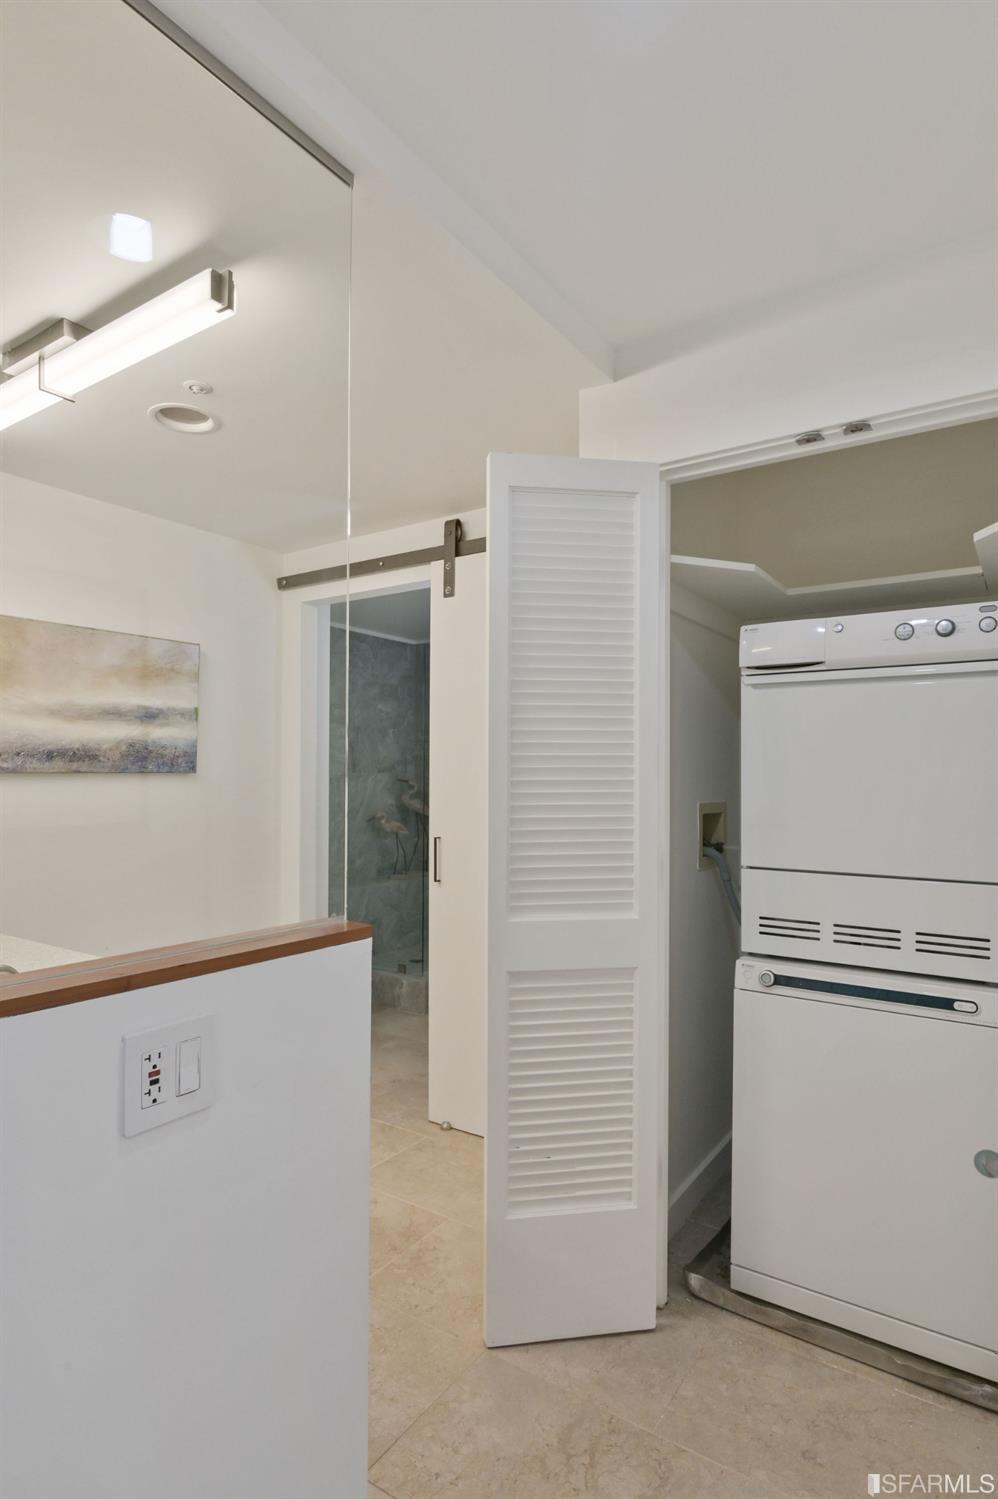 In-unit washer/dryer has its own alcove